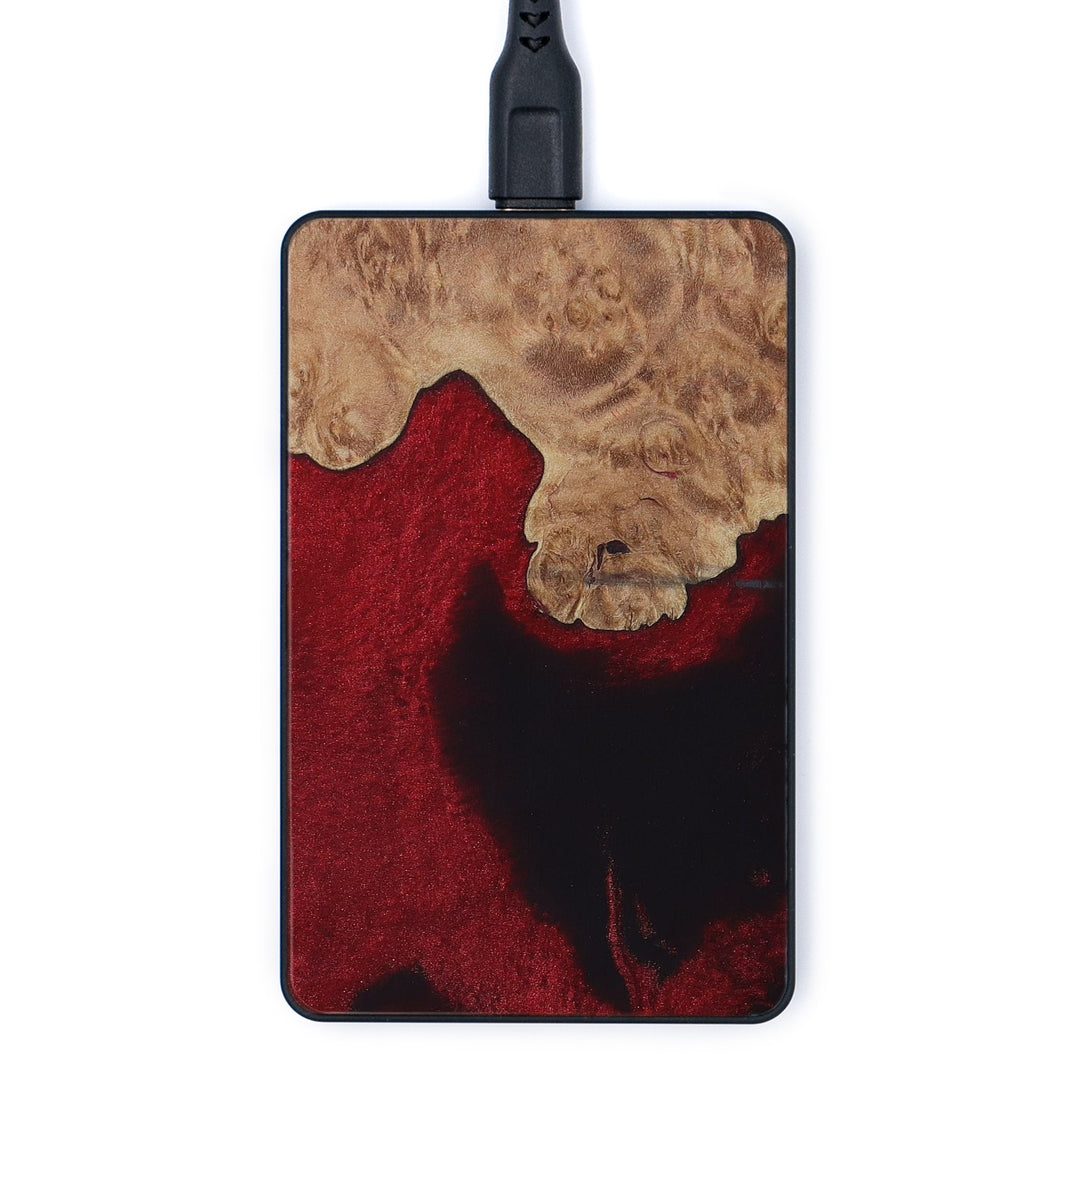 Thin Wood+Resin Wireless Charger - Hillary (Dark Red, 419875)